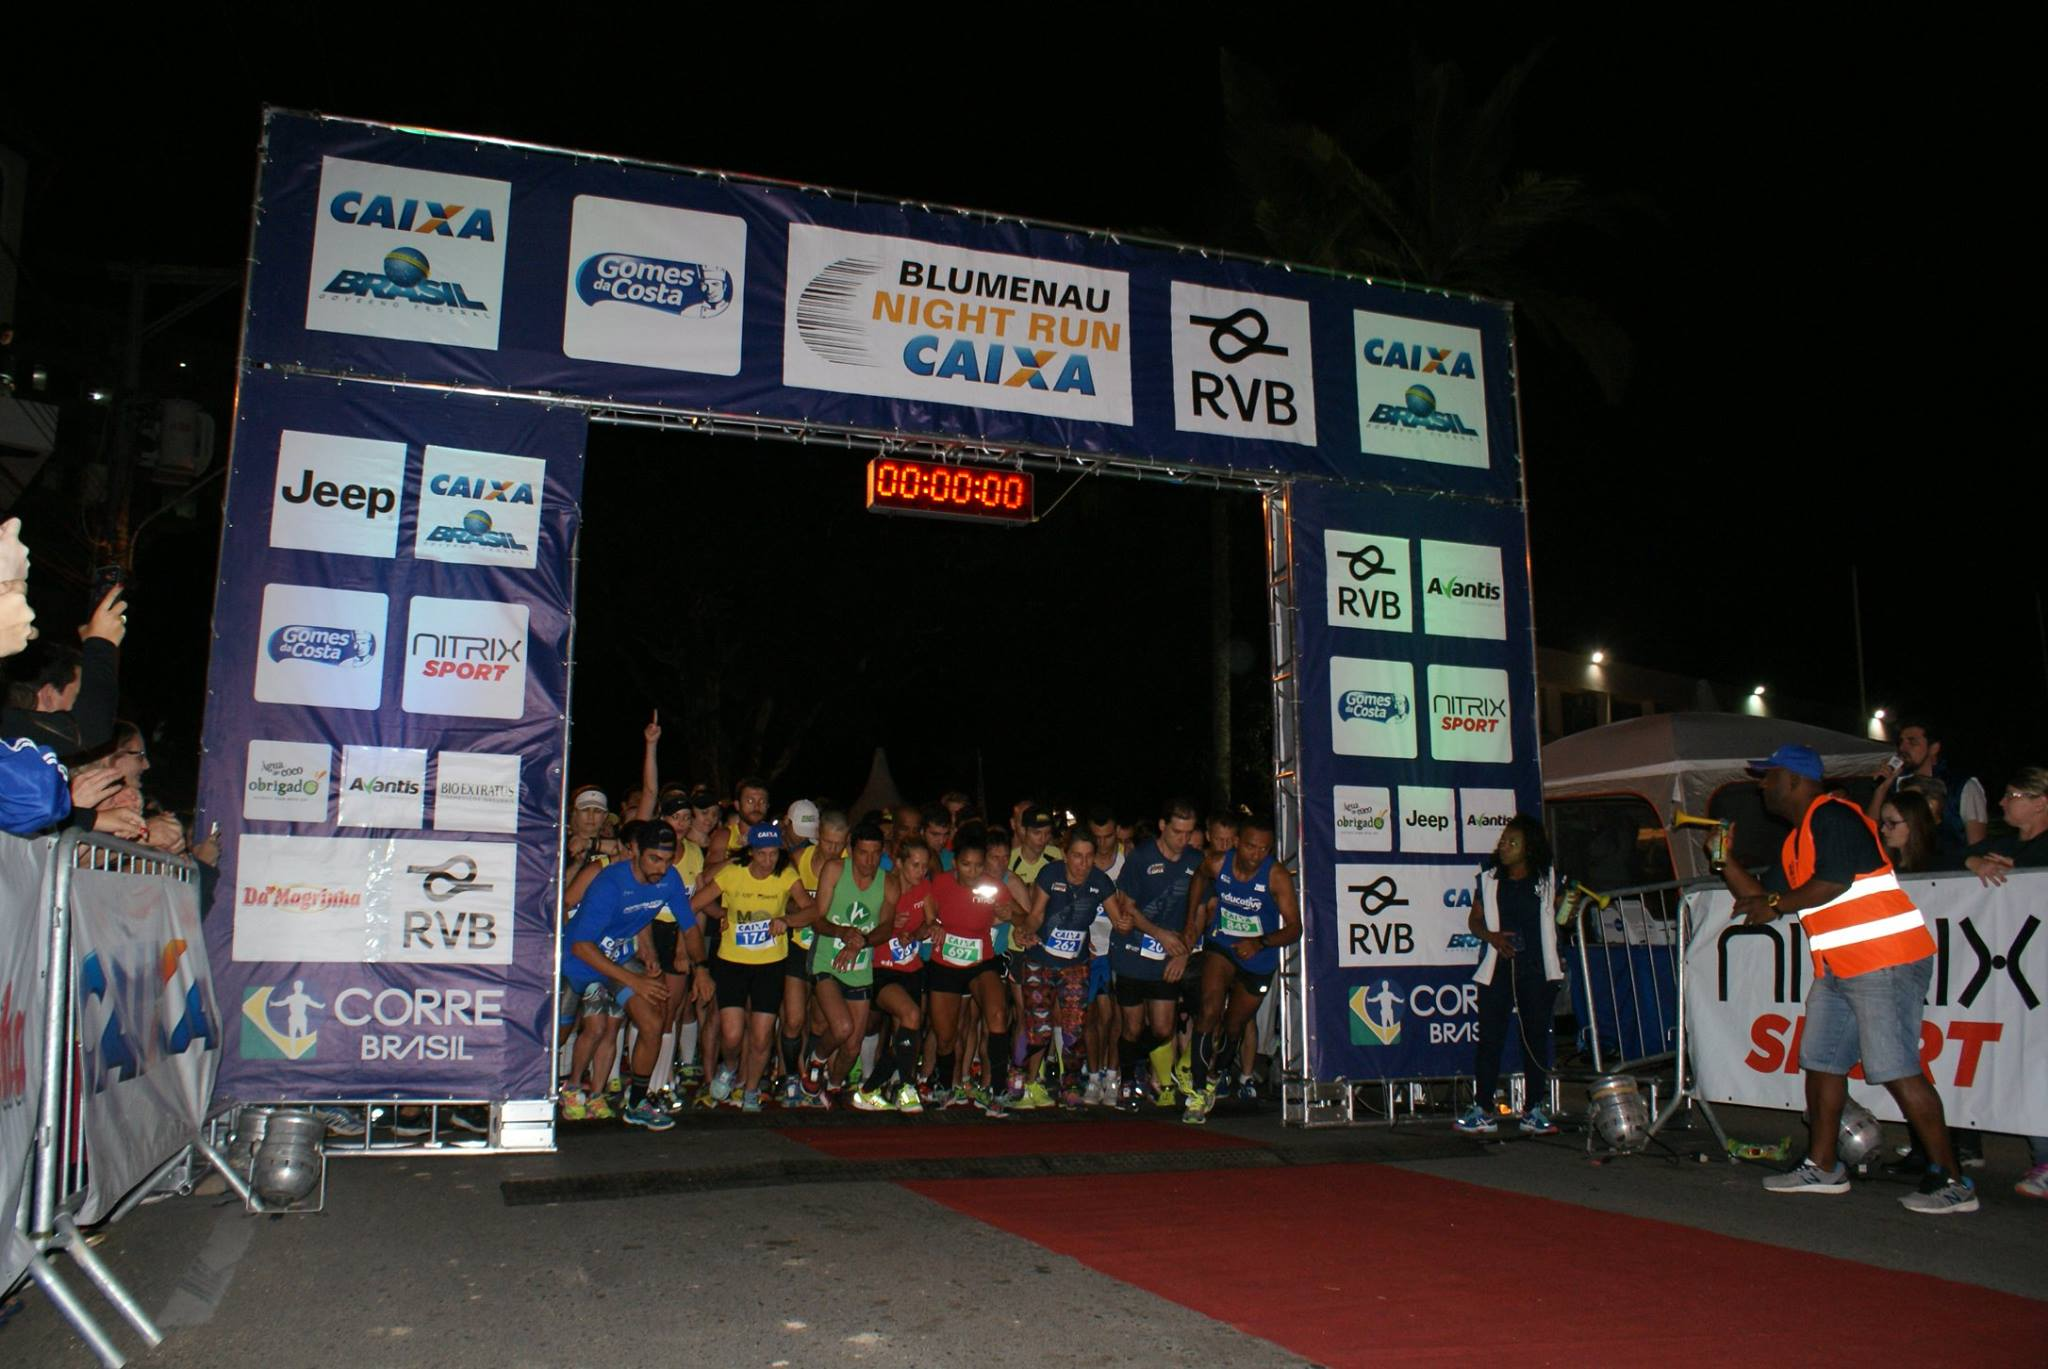 Blumenau Night Run